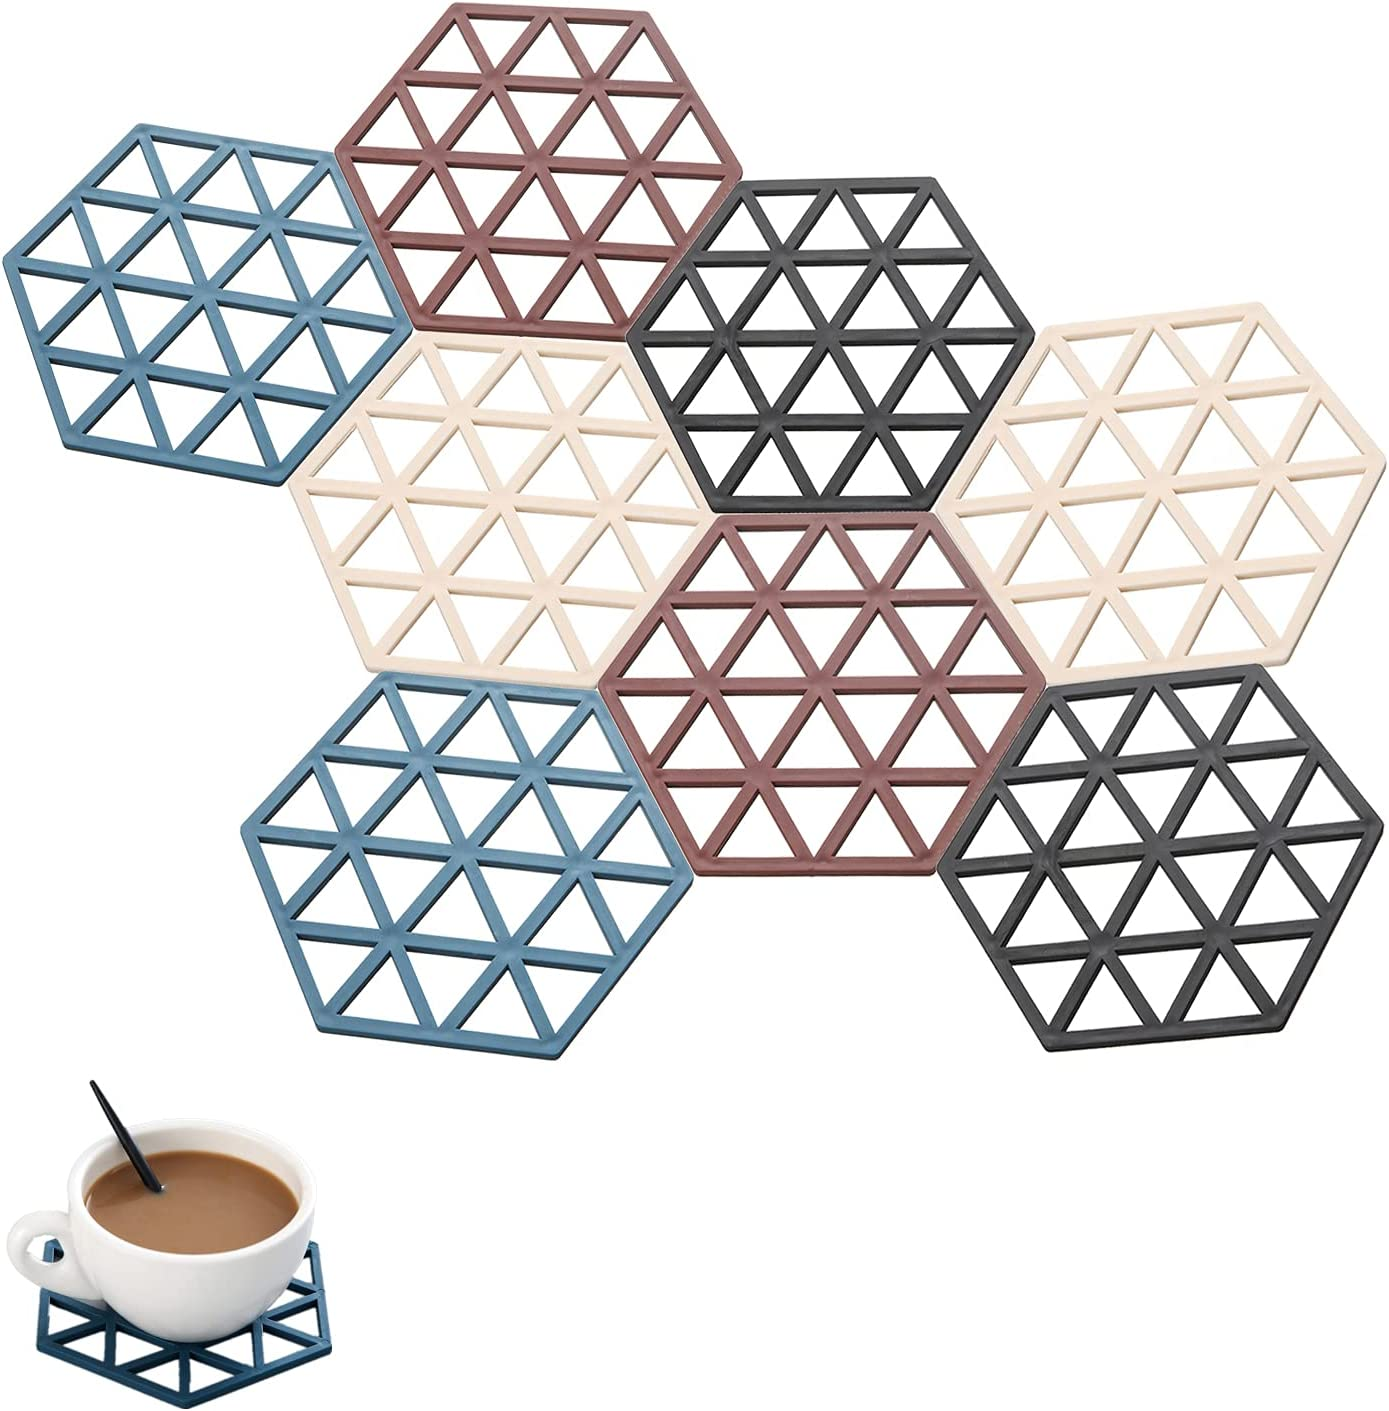 Logentic 8 Pack Silicone Trivet Mats Food Grade Hexagonal Multipurpose Lattice Trivet Set Non-slip Heat Insulation Suitable for Dishes Cups Pots Table and Kitchen Counter Decoration